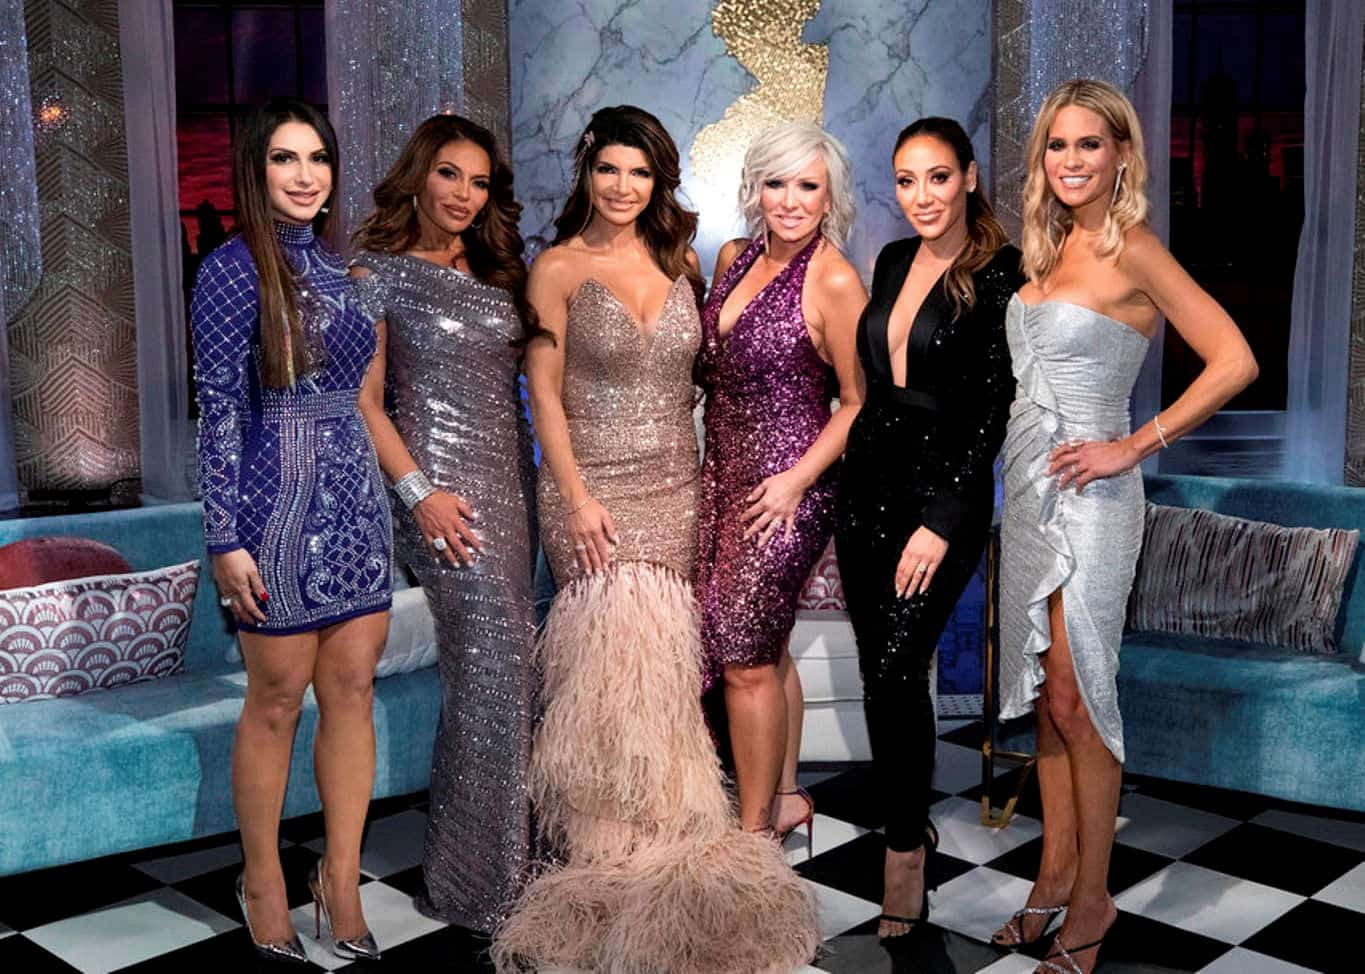 RHONJ Season 11 Spoilers Revealed: Teresa Giudice Brings Up Cheating Rumors Regarding Jackie Goldschneider's Husband as Dolores Catania Feuds With Jennifer Aydin and Joe Gorga